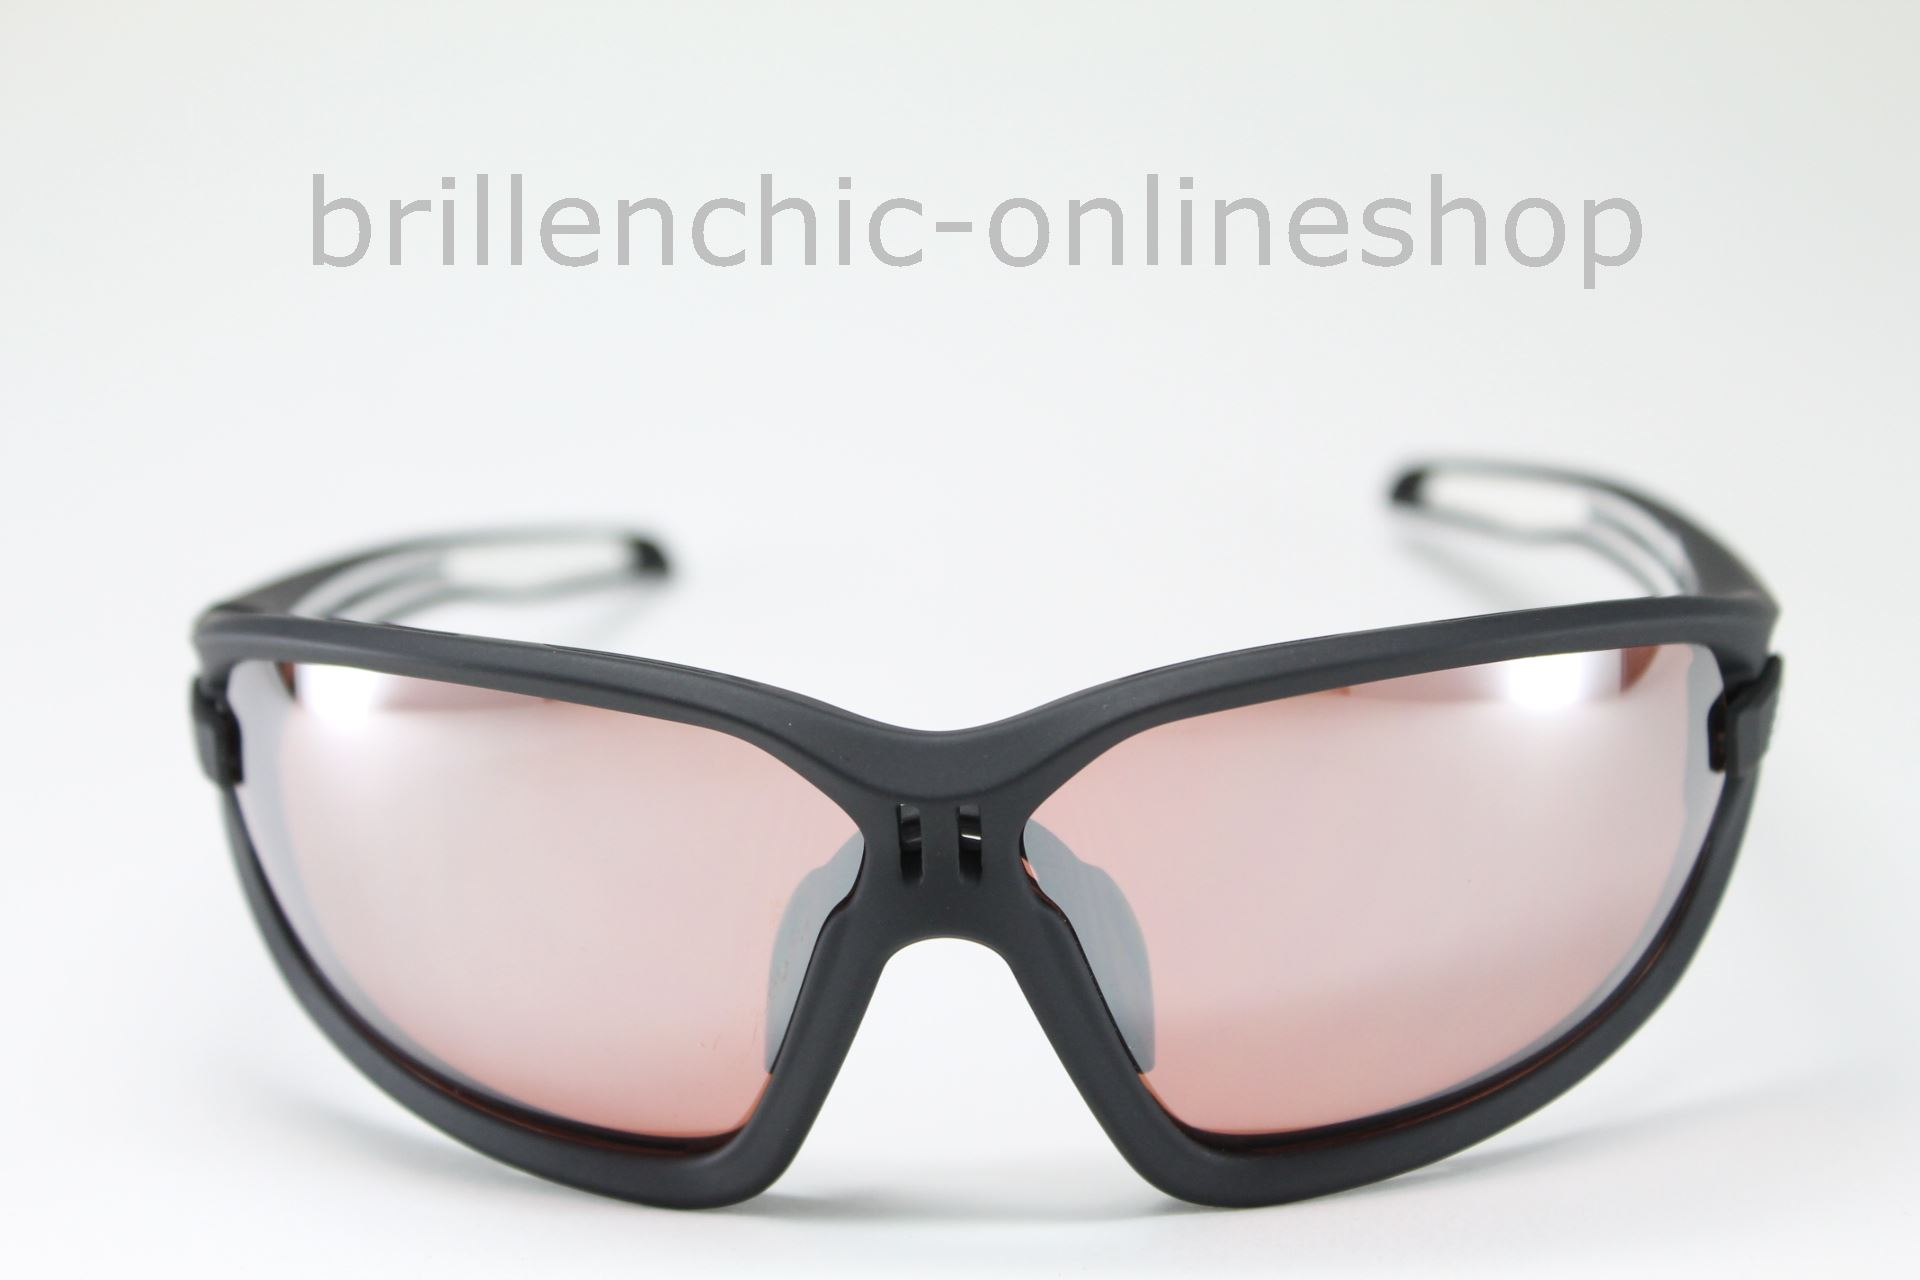 1317fcccbad Brillenchic-onlineshop in Berlin - ADIDAS evil eye evo a419 6051